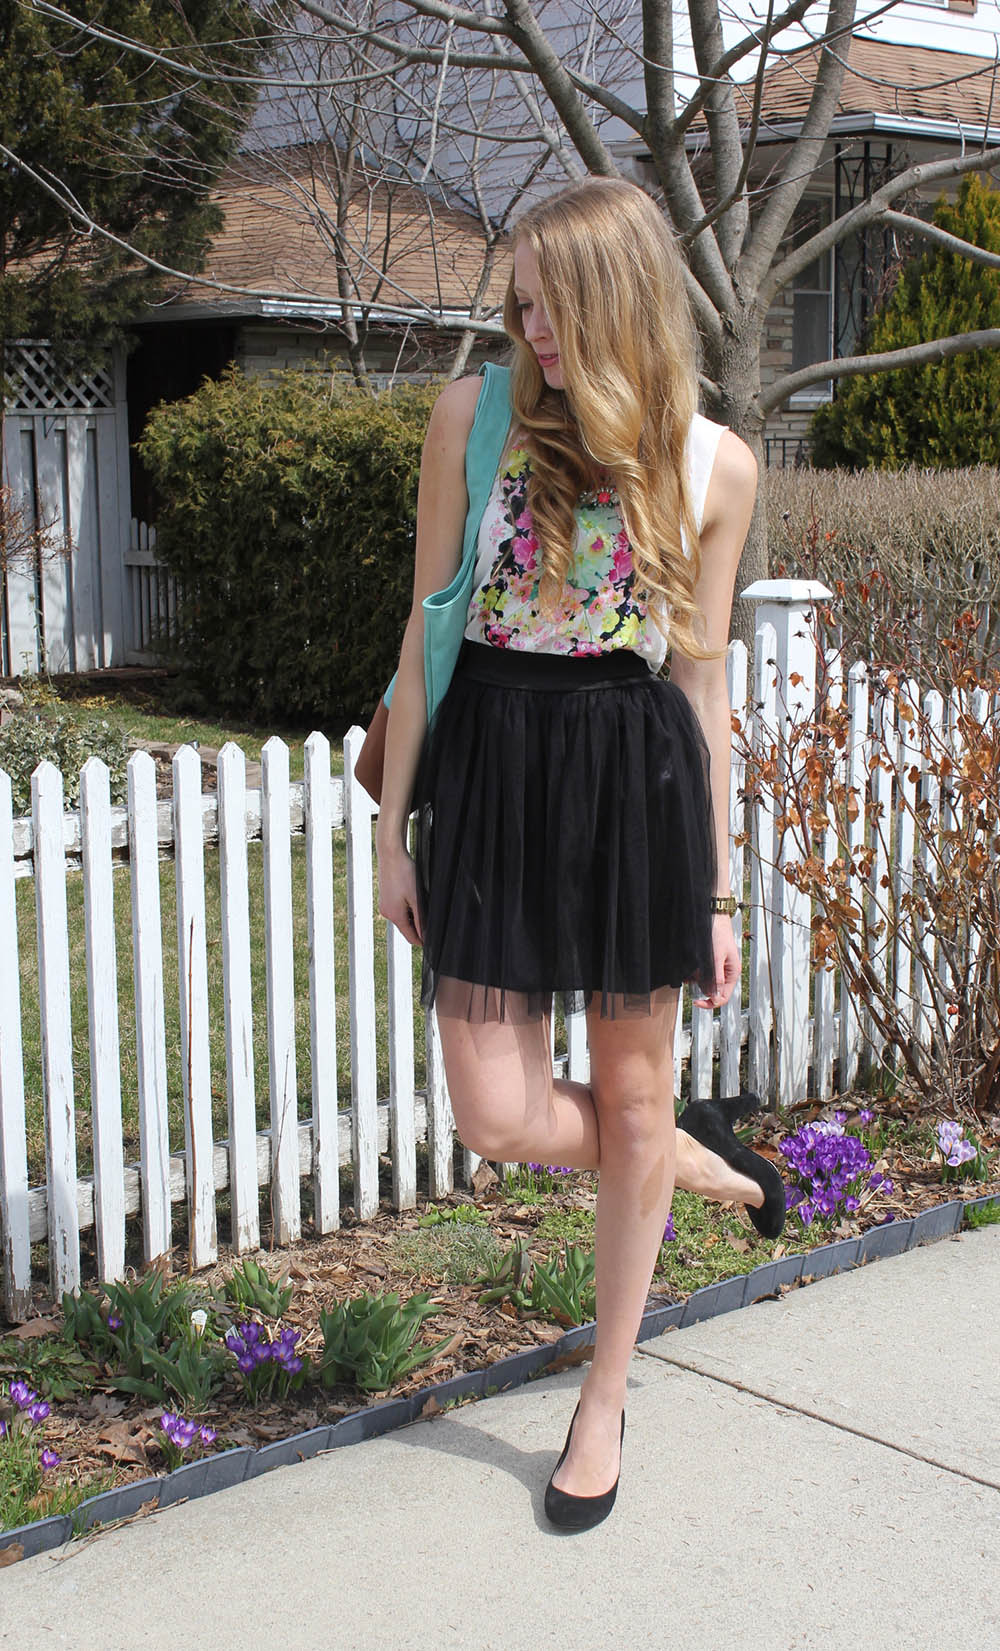 h&m floral top and black skirt